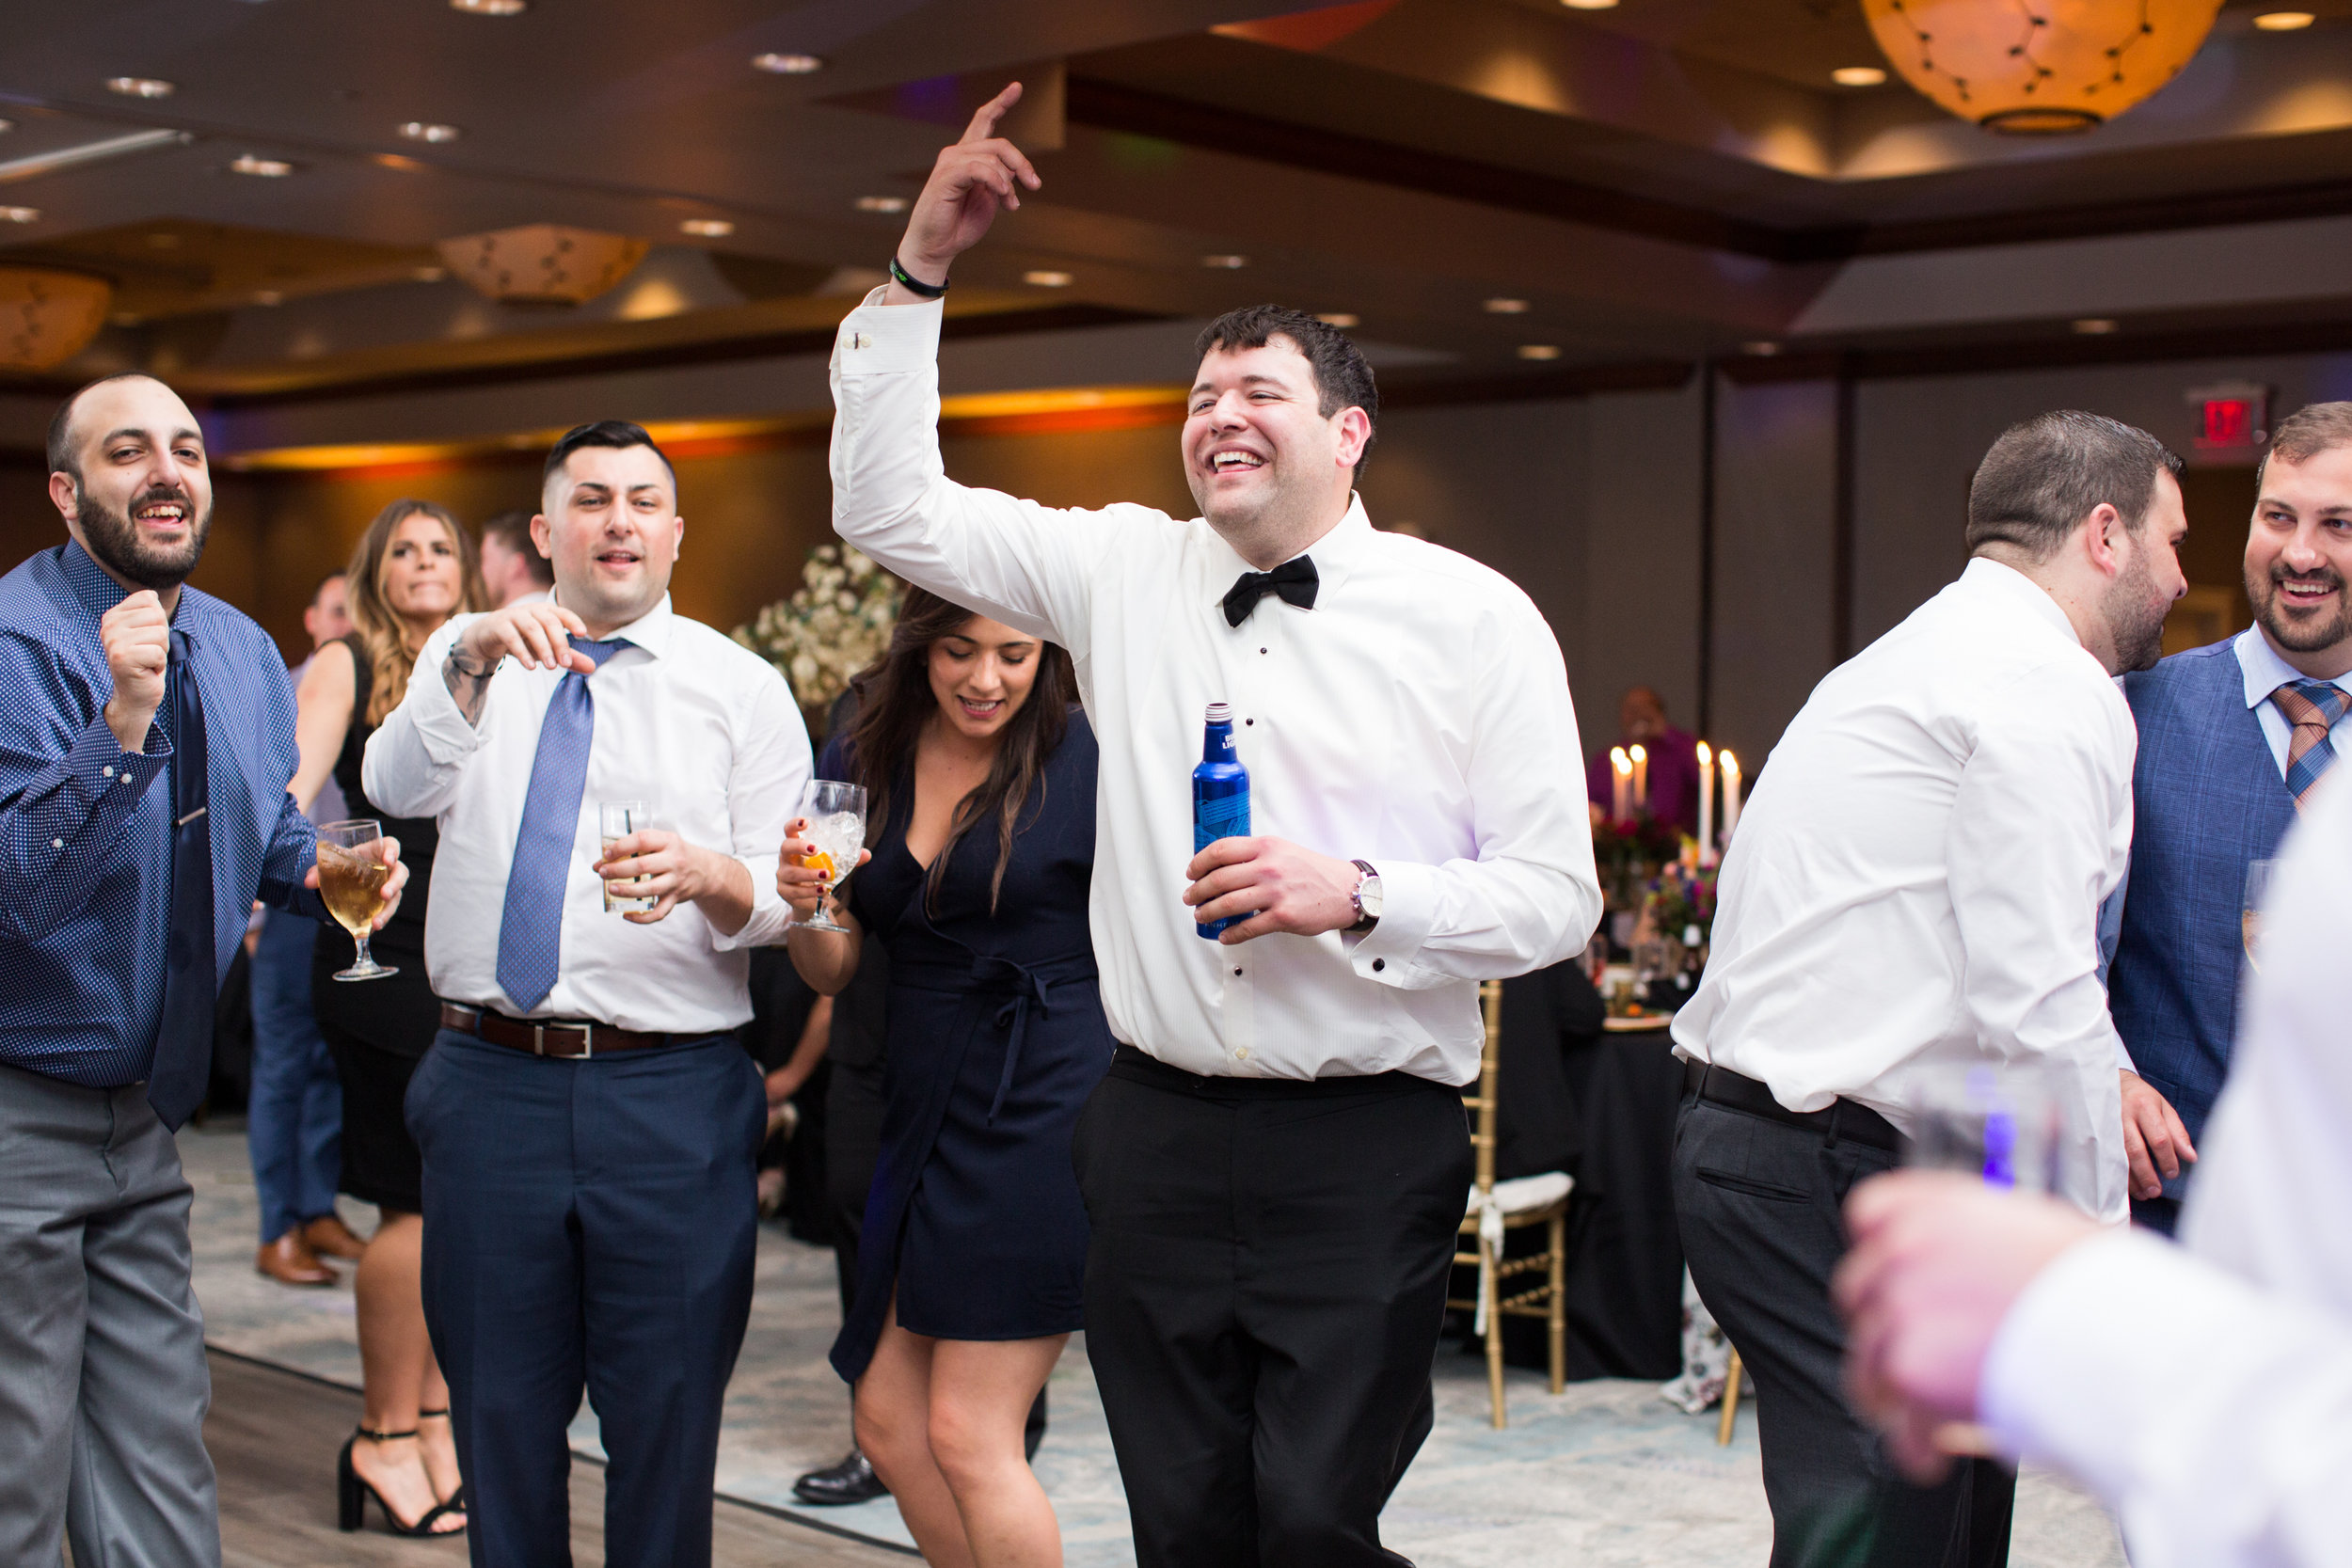 Hilton Scranton PA Wedding Photos_JDP-150.jpg